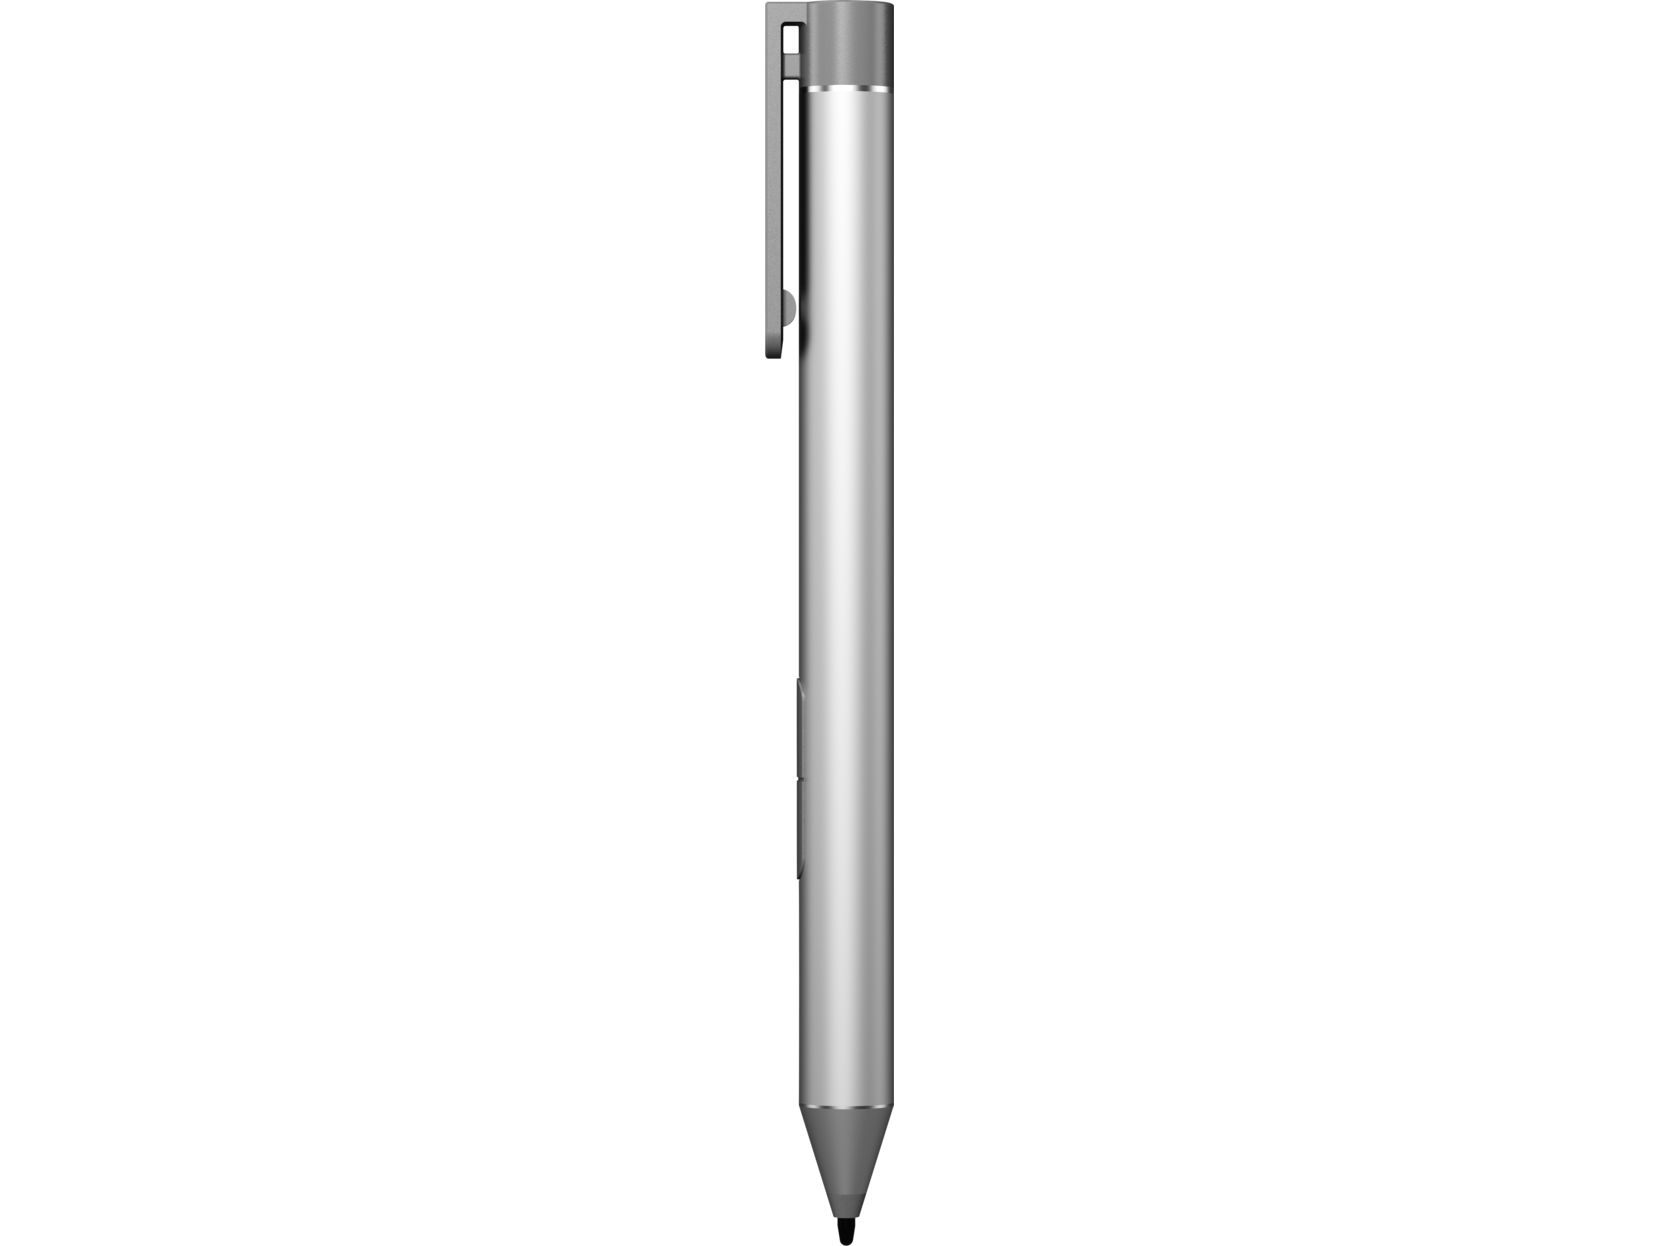 ACTIVE PEN WITH SPARE TIPS U.S. - ENGLISH LOCALIZATION